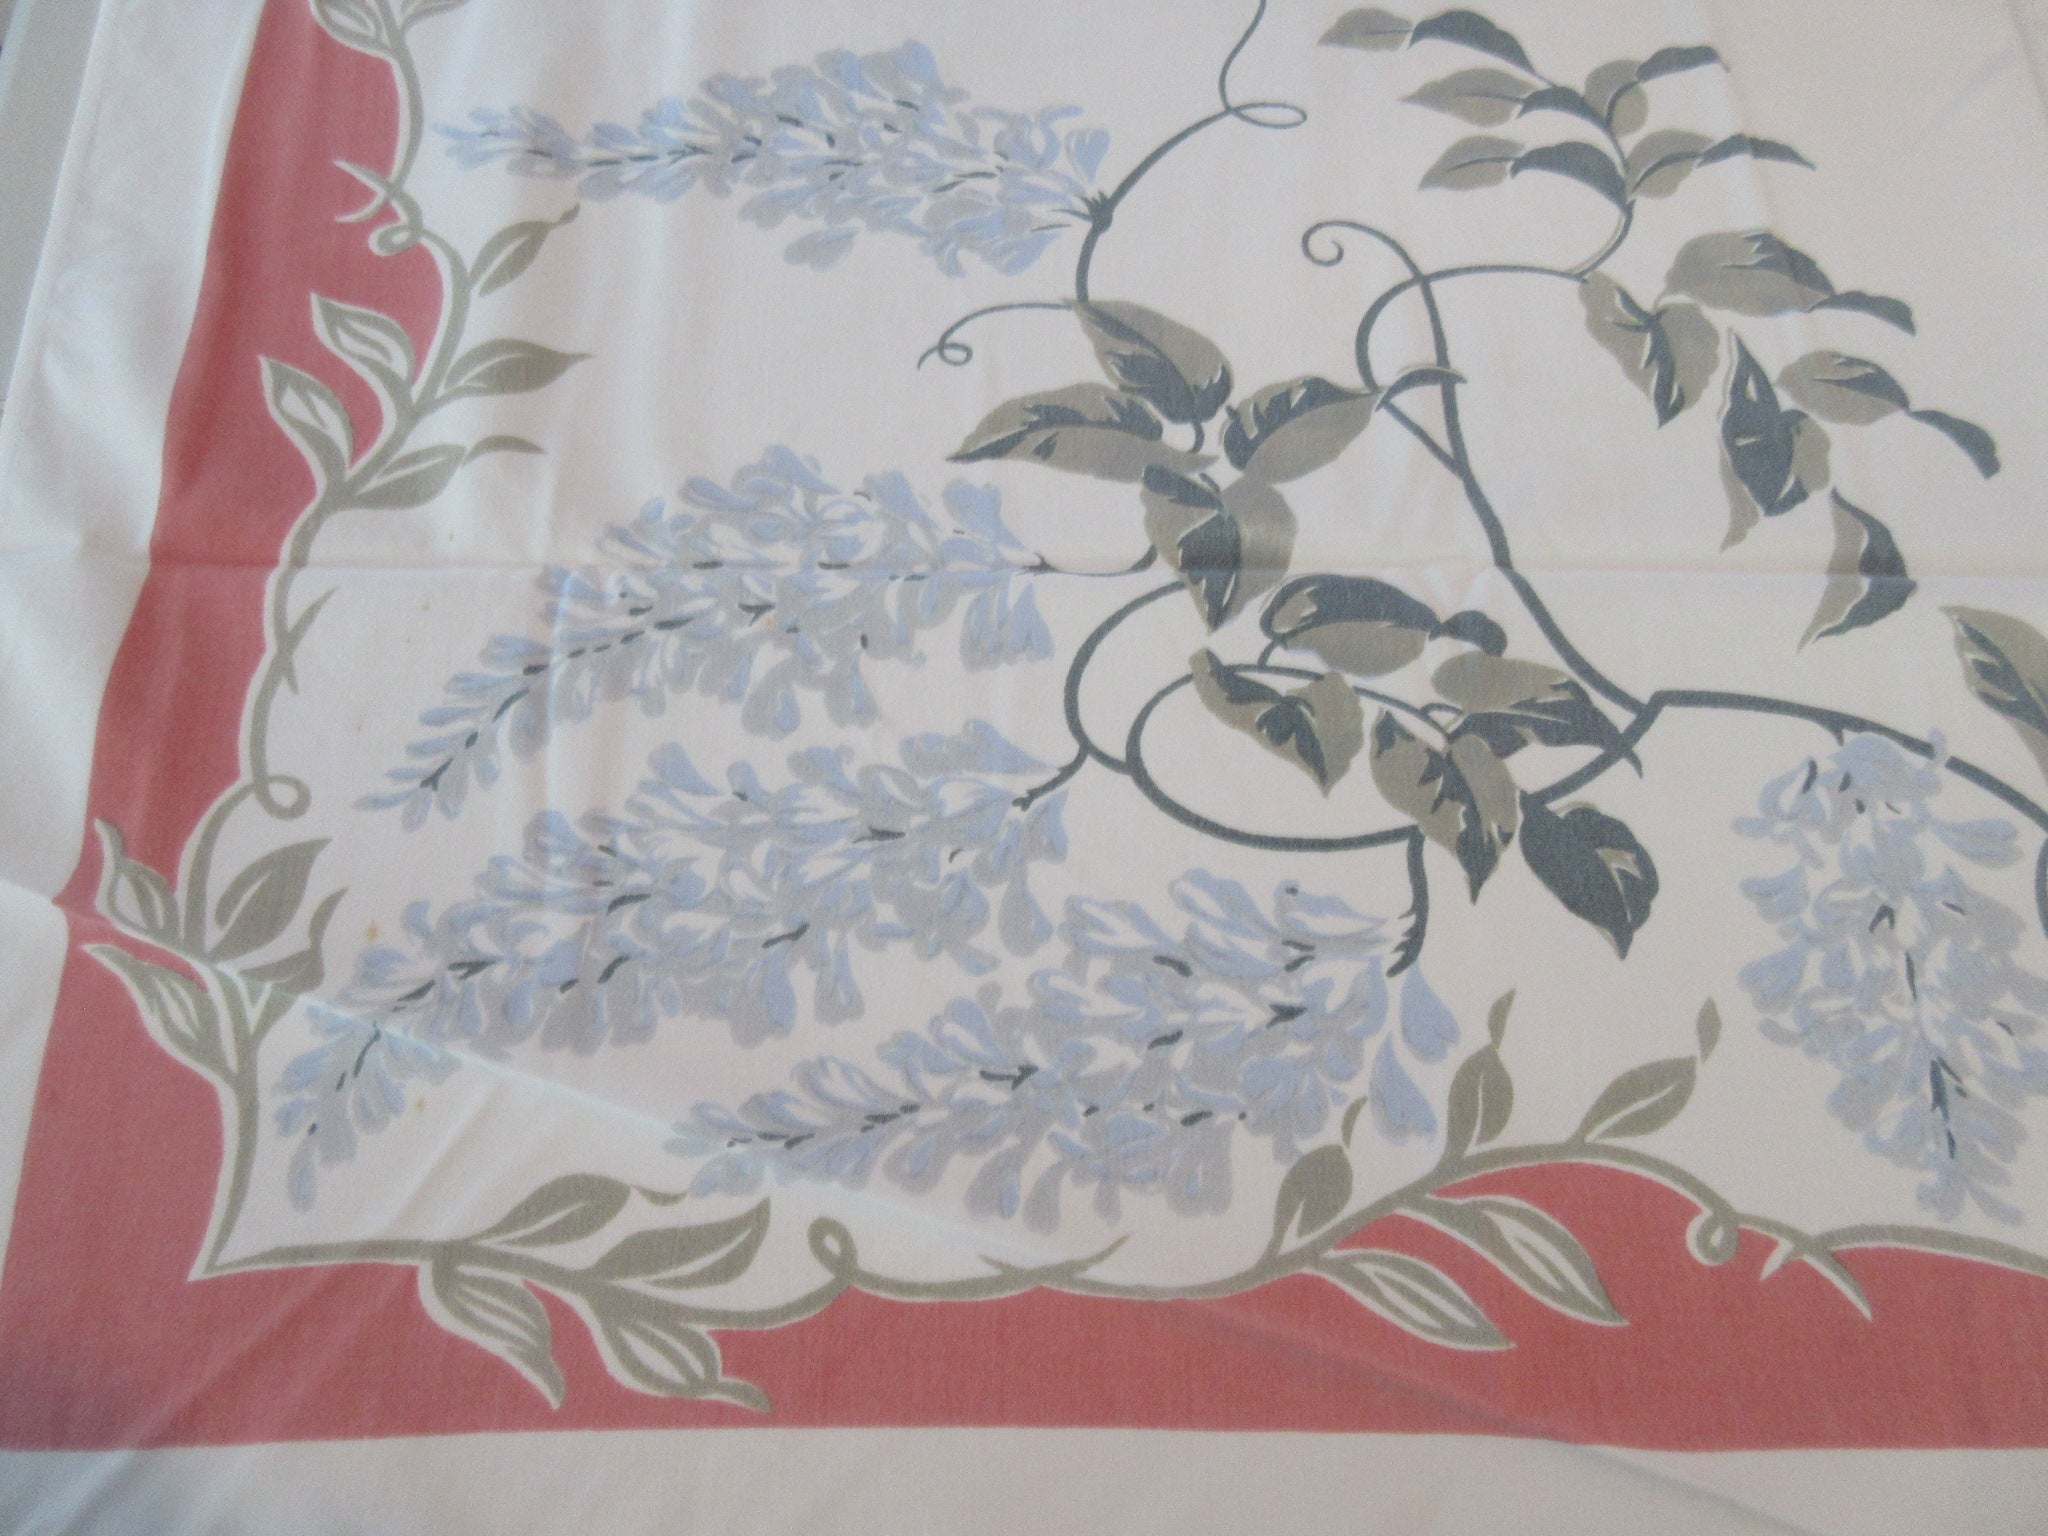 Blue Wisteria on Coral Cutter? Floral Vintage Printed Tablecloth (52 X 44)